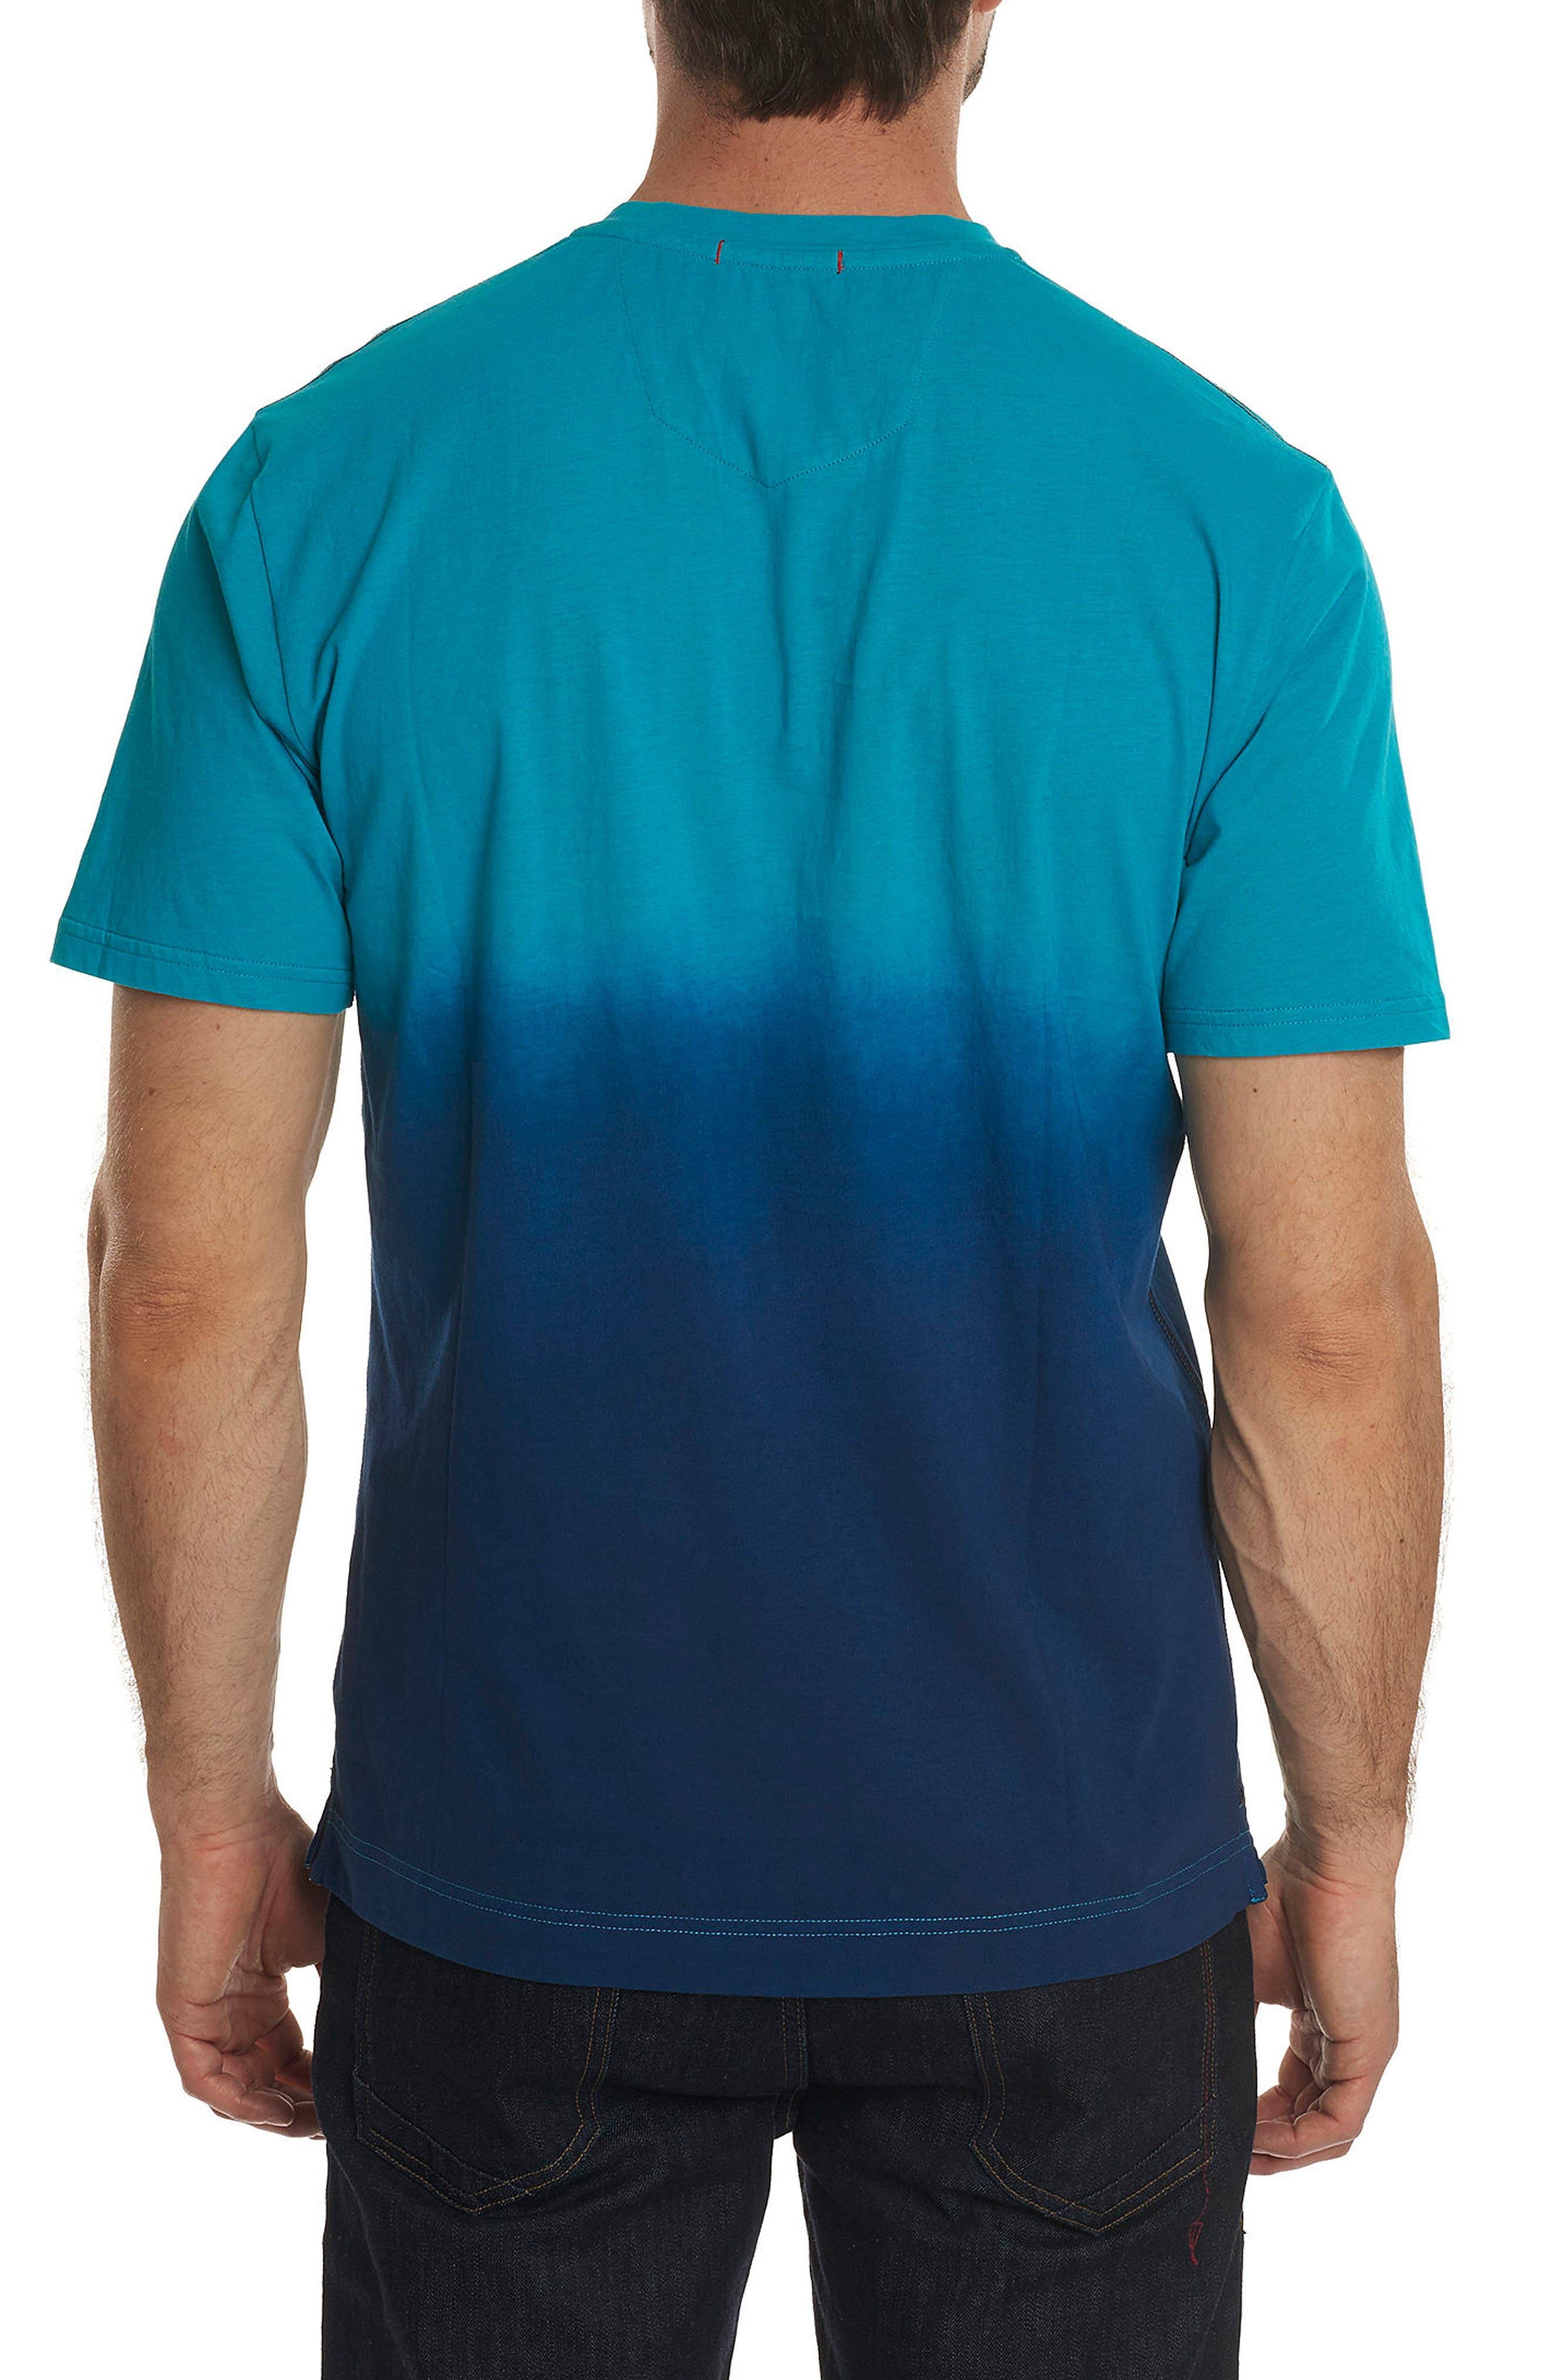 Into the Wind Knit Graphic T-Shirt,                             Alternate thumbnail 2, color,                             444